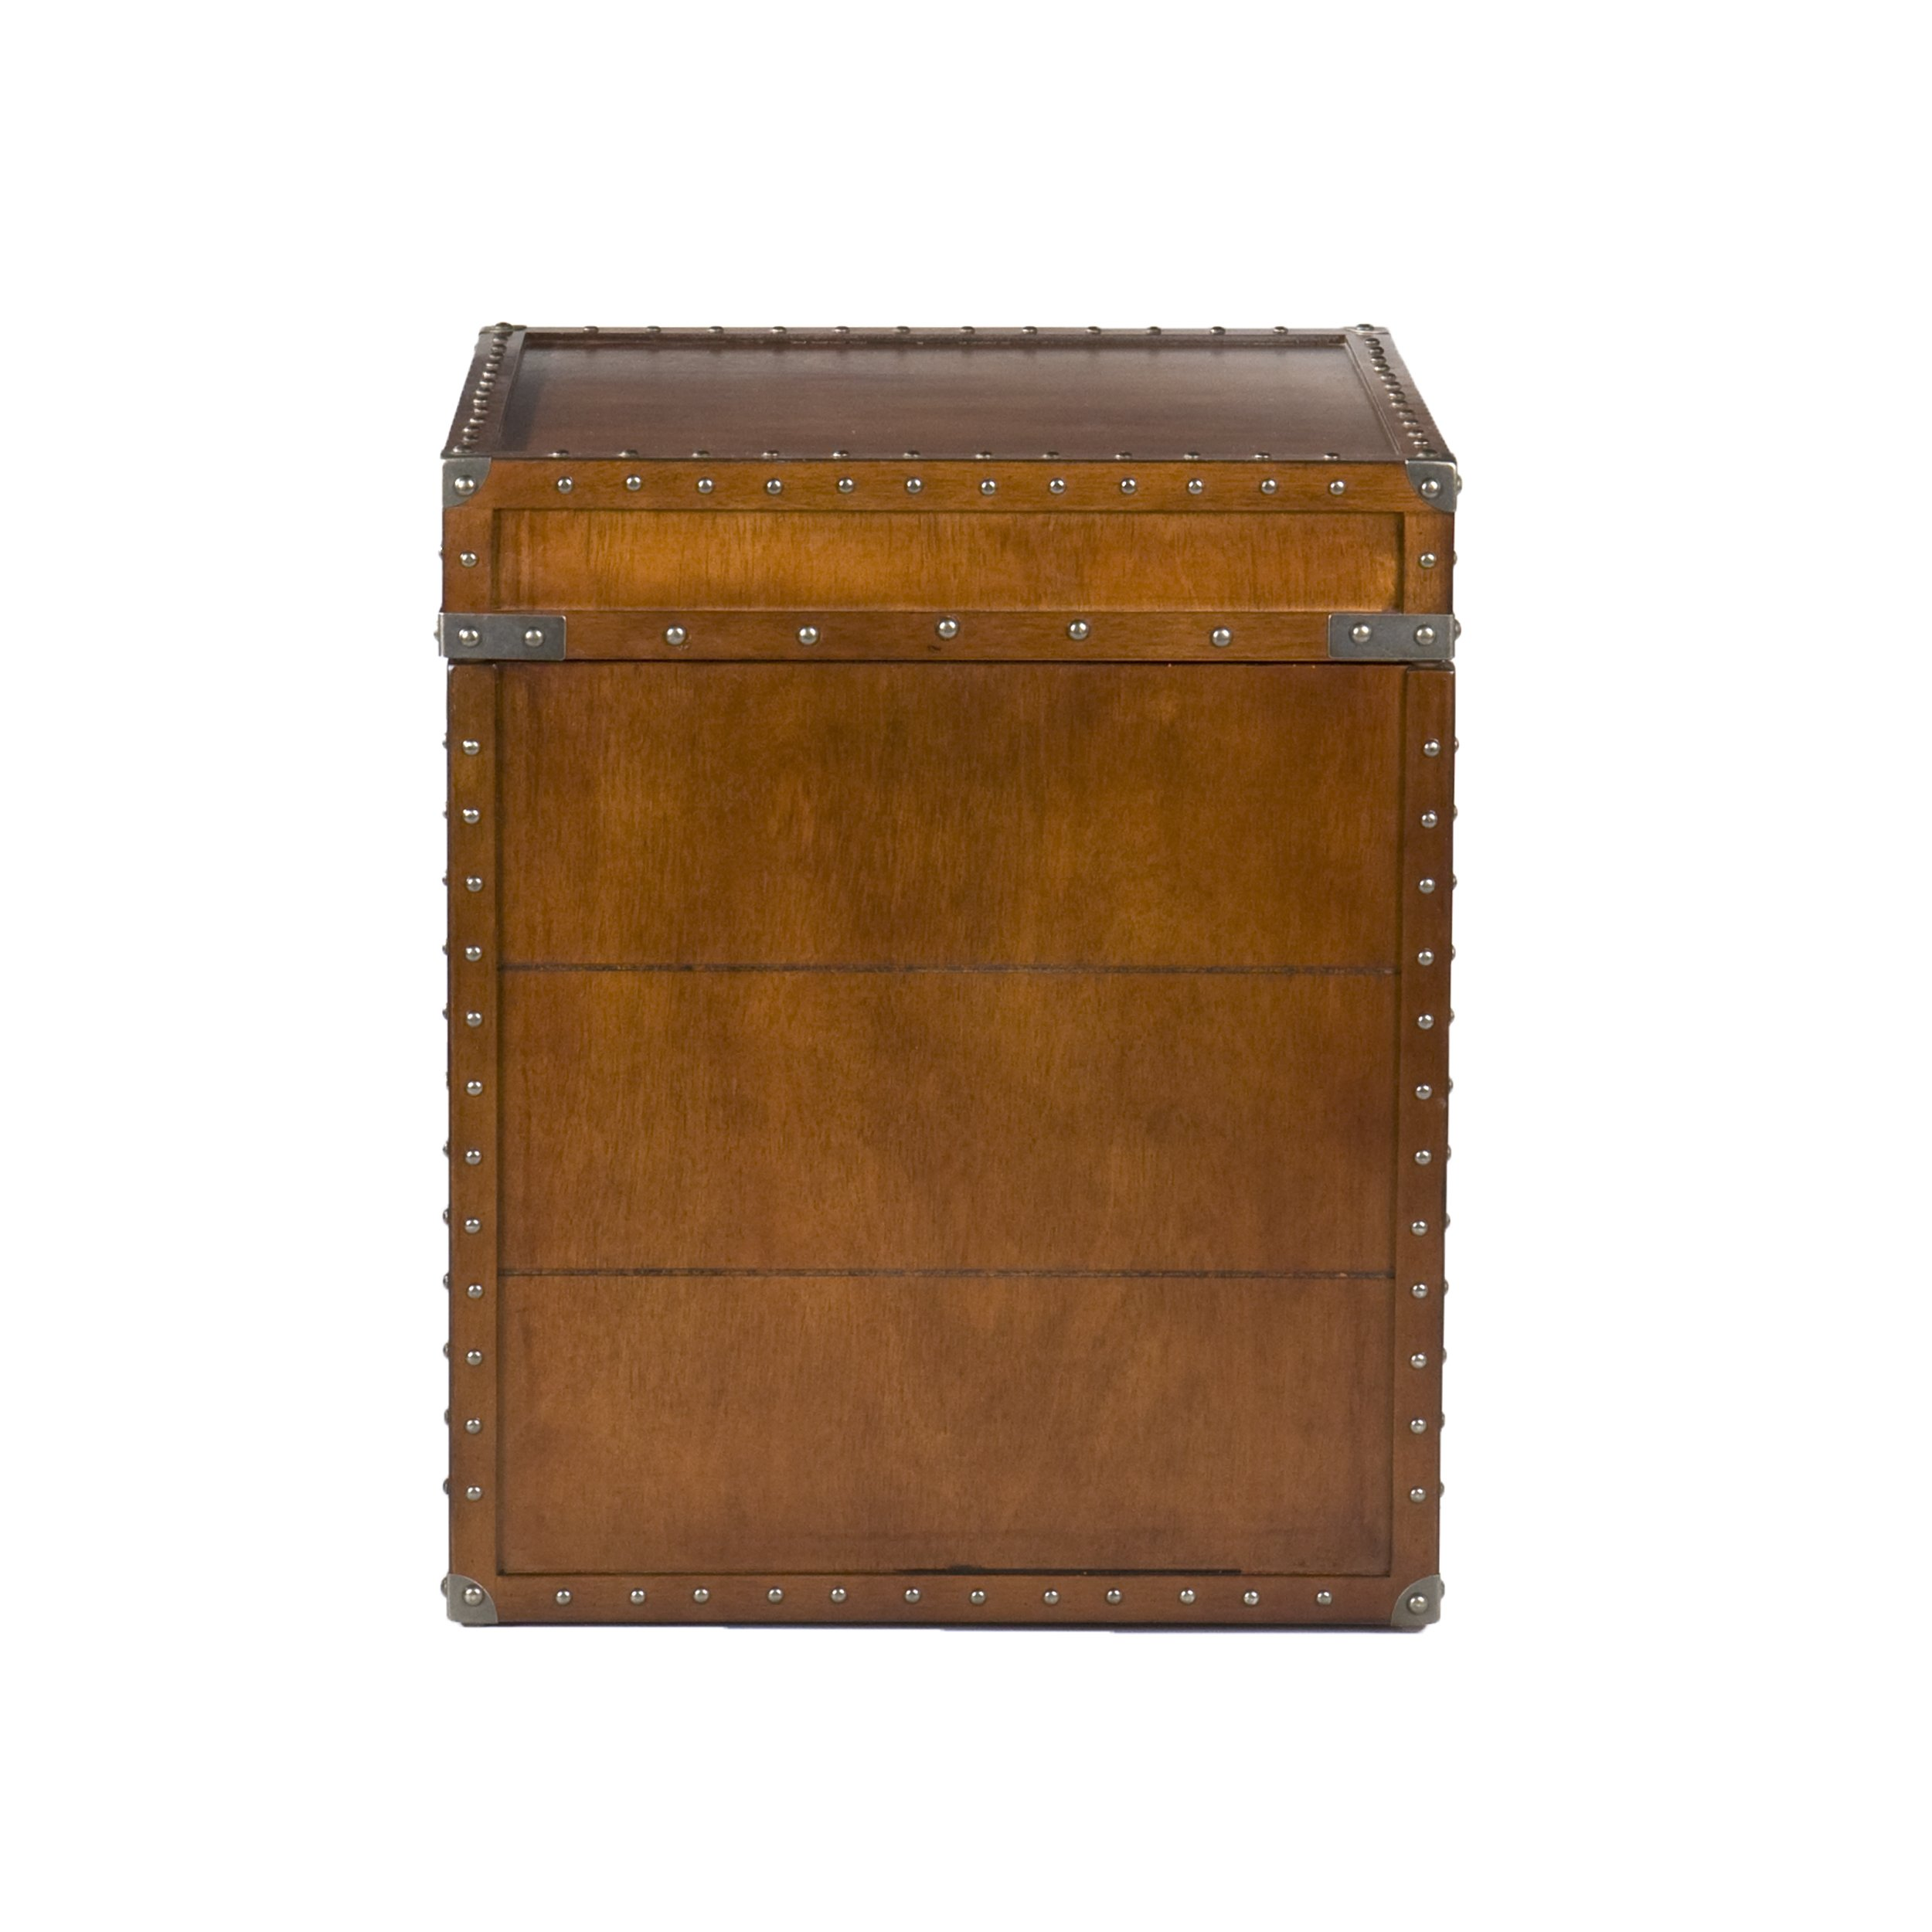 Southern Enterprises Steamer Trunk End Table - Rustic Nailhead Trim - Refinded Industrial Style by Southern Enterprises